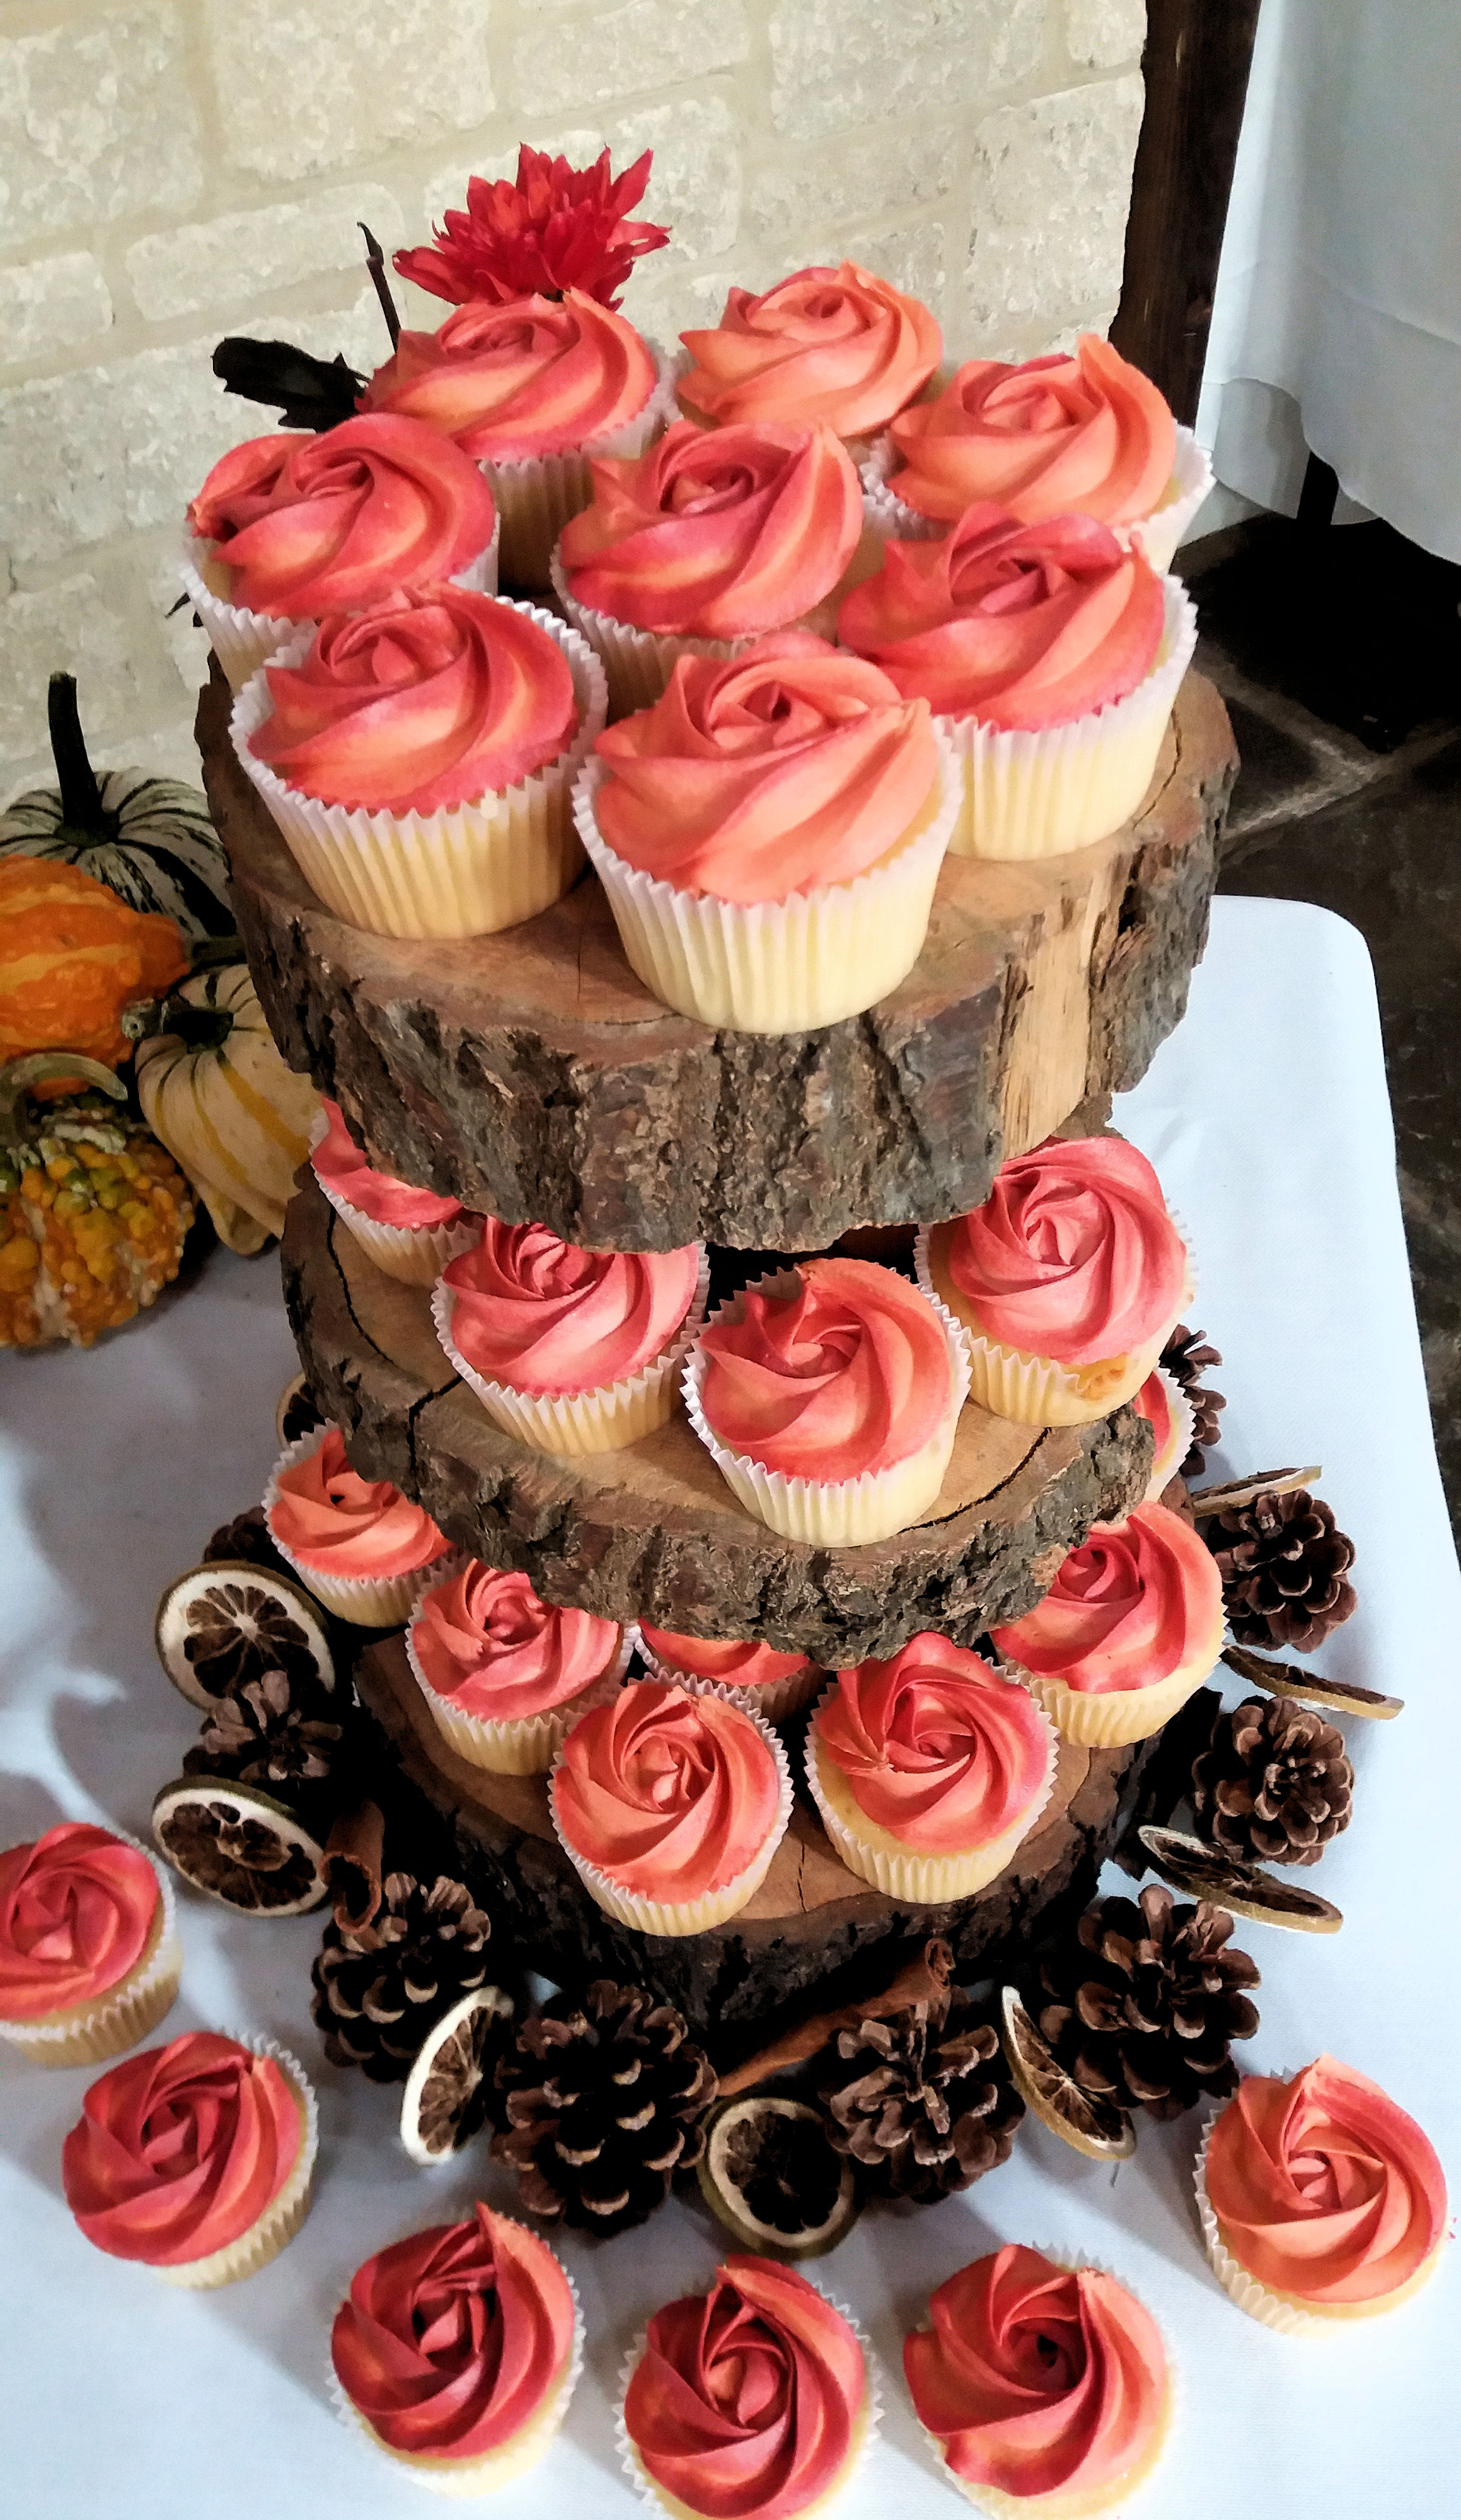 Ombre Rose Wedding Cake & Cupcakes2.jpg